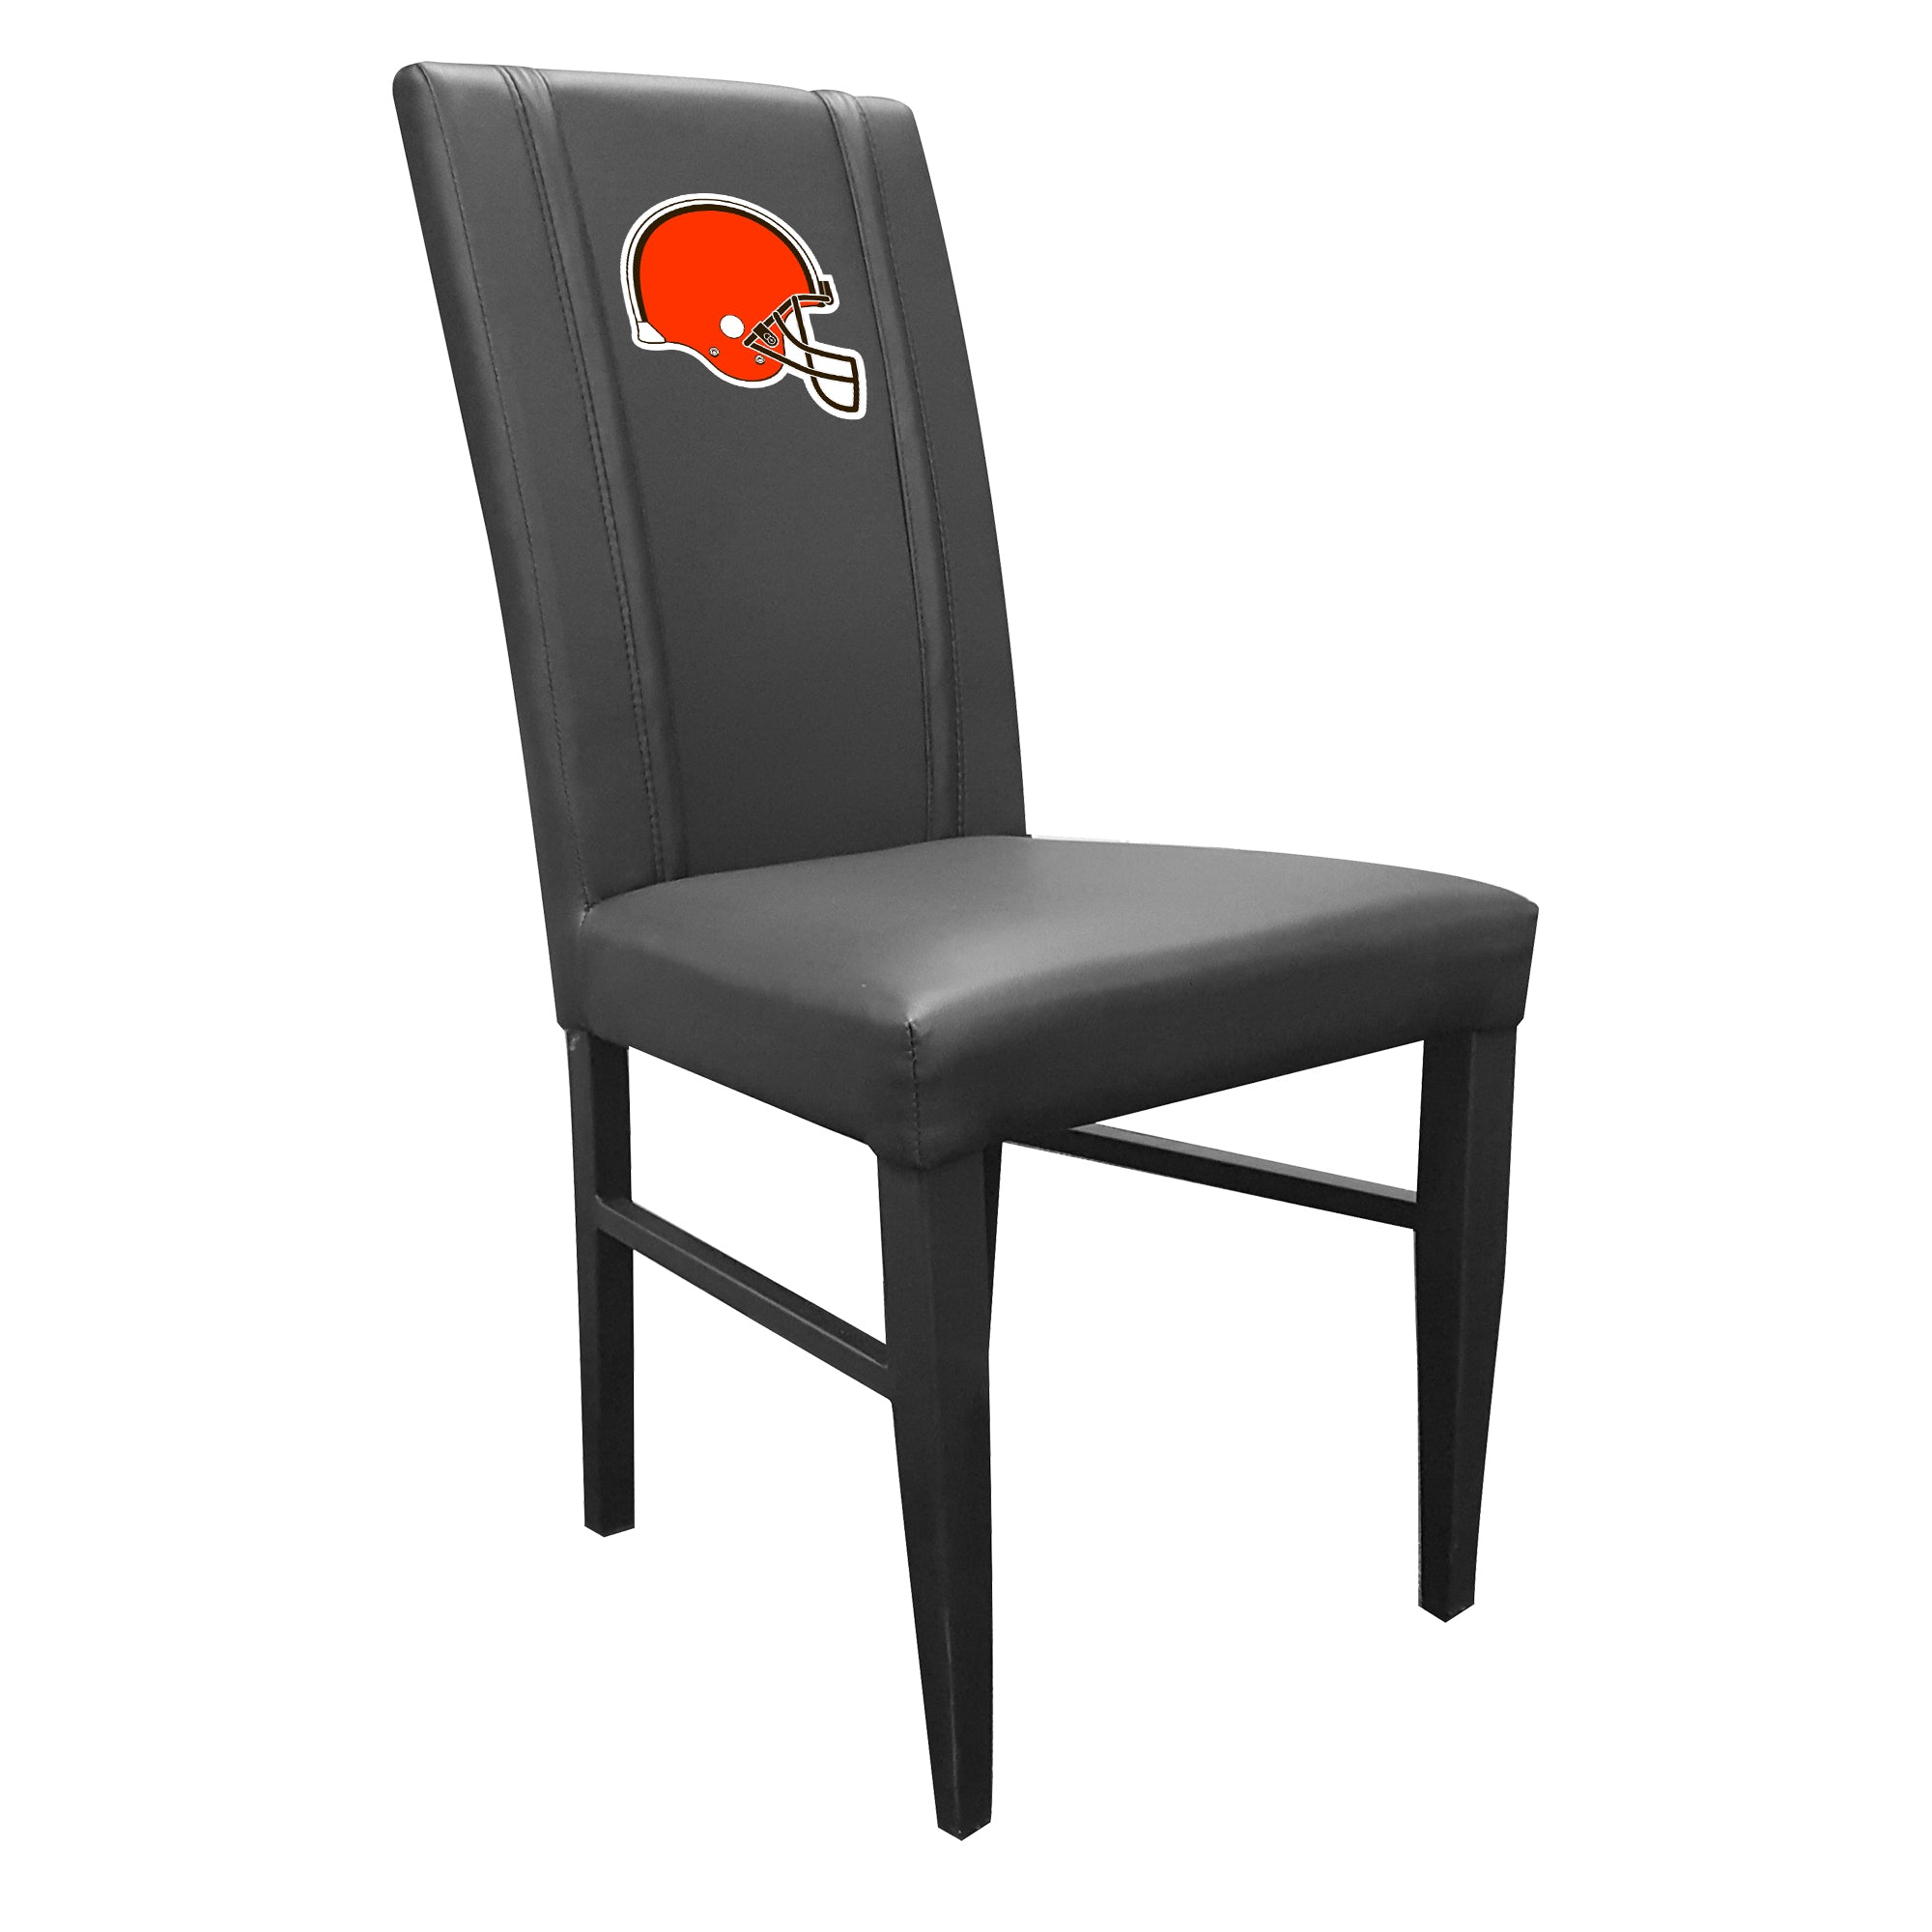 Side Chair 2000 with  Cleveland Browns Helmet Logo